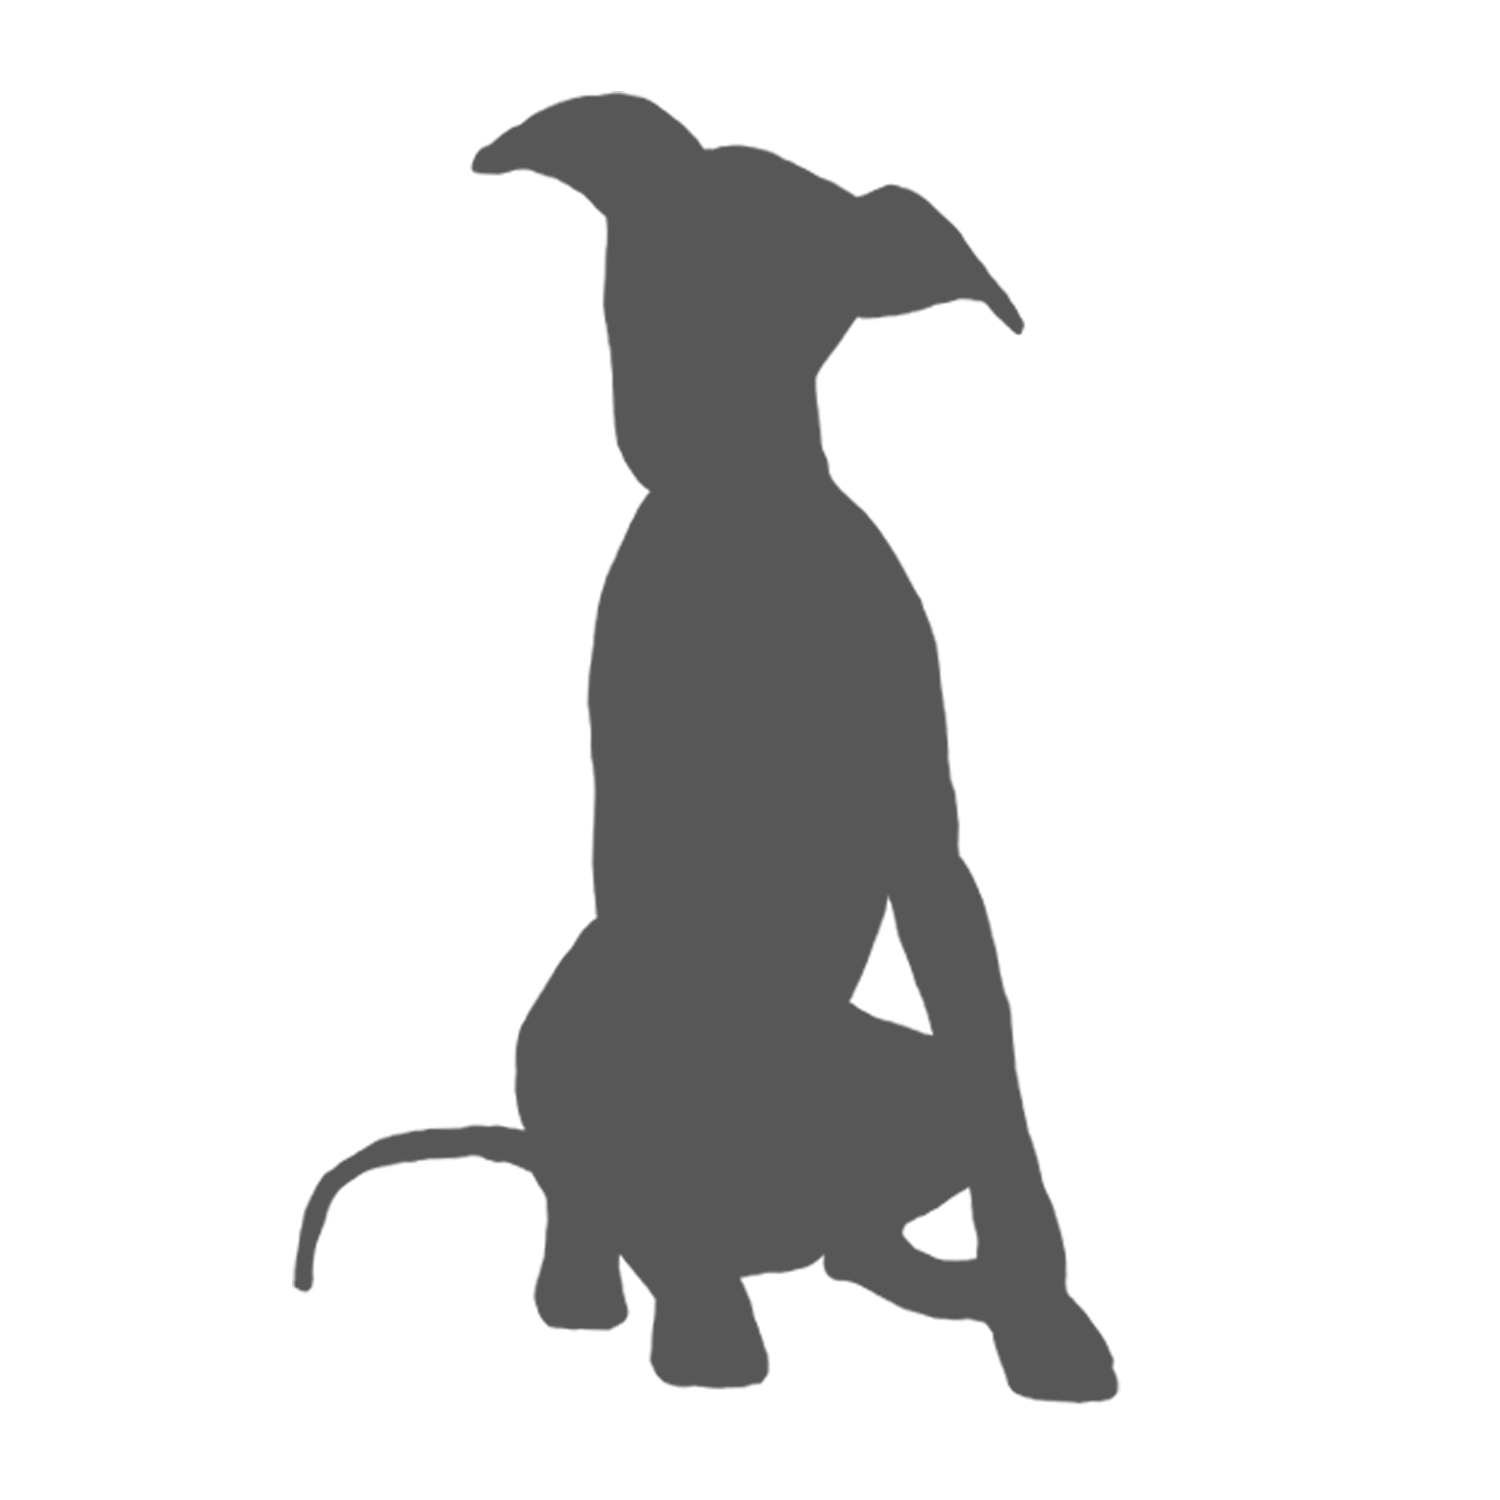 Dog donating money clipart jpg black and white library whippet silhouette - Google Search | Whippet life | Pinterest ... jpg black and white library